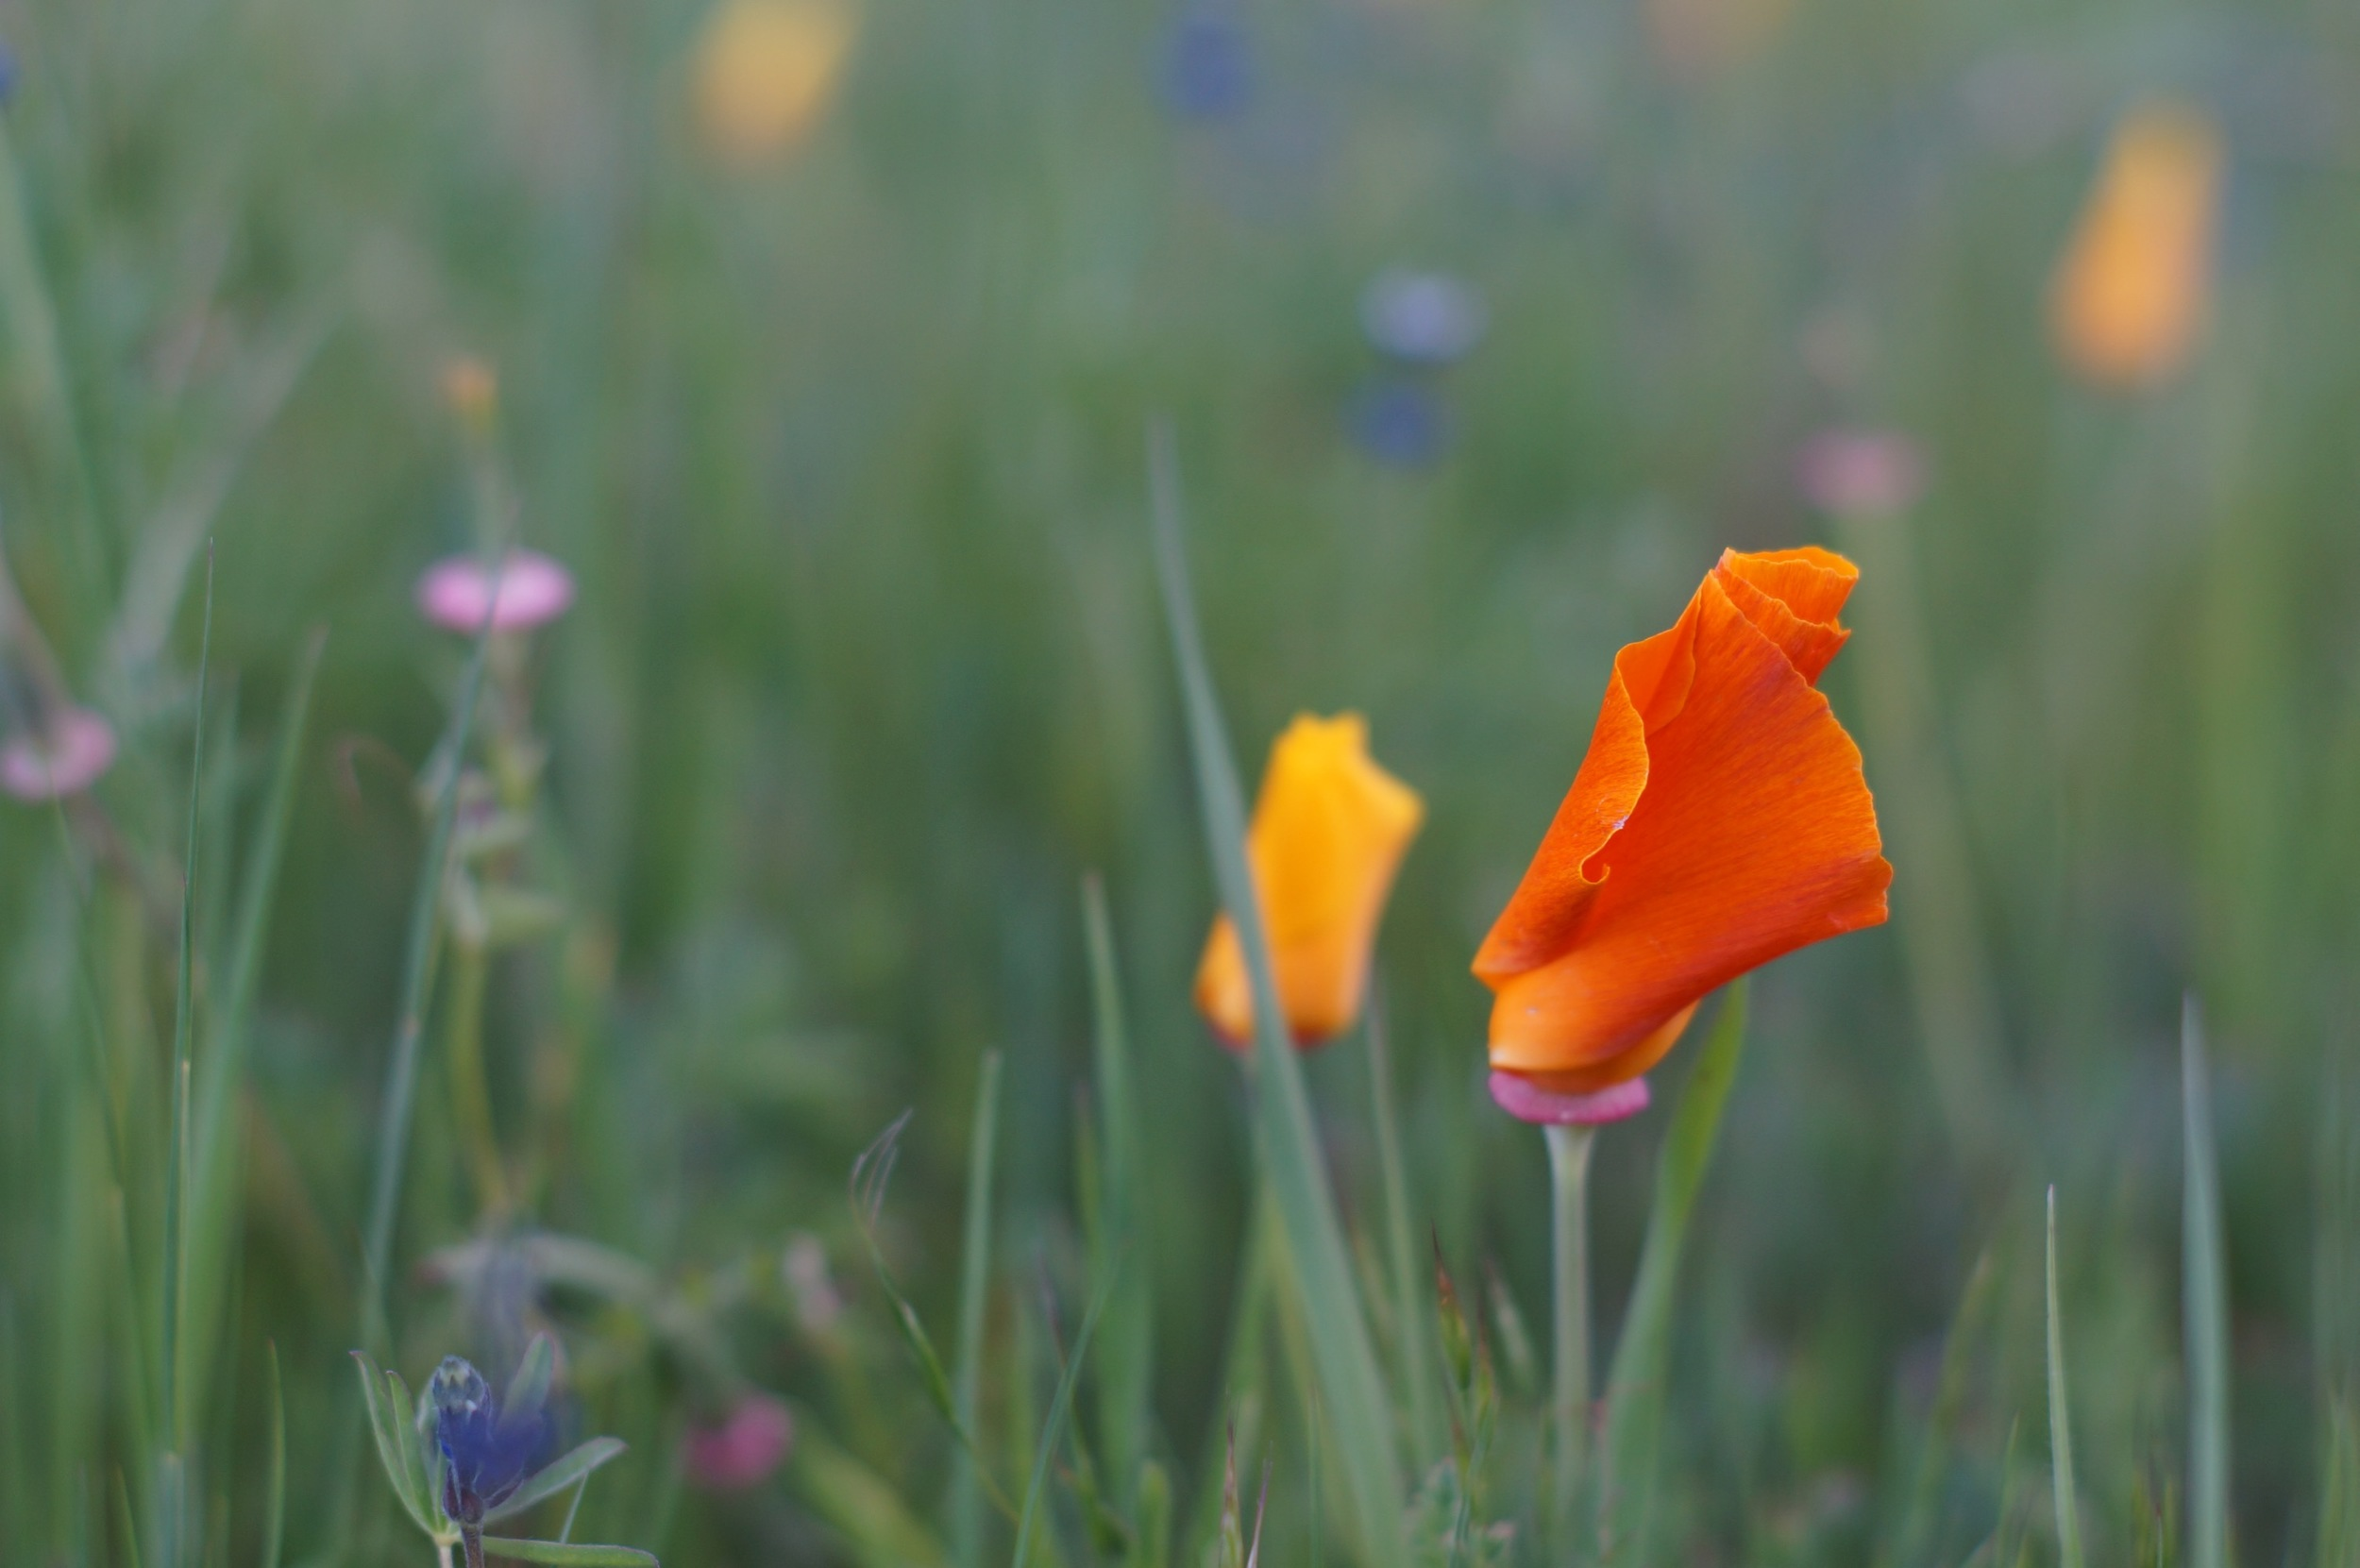 Furled California Poppy. One of my favorite photographs of the year.